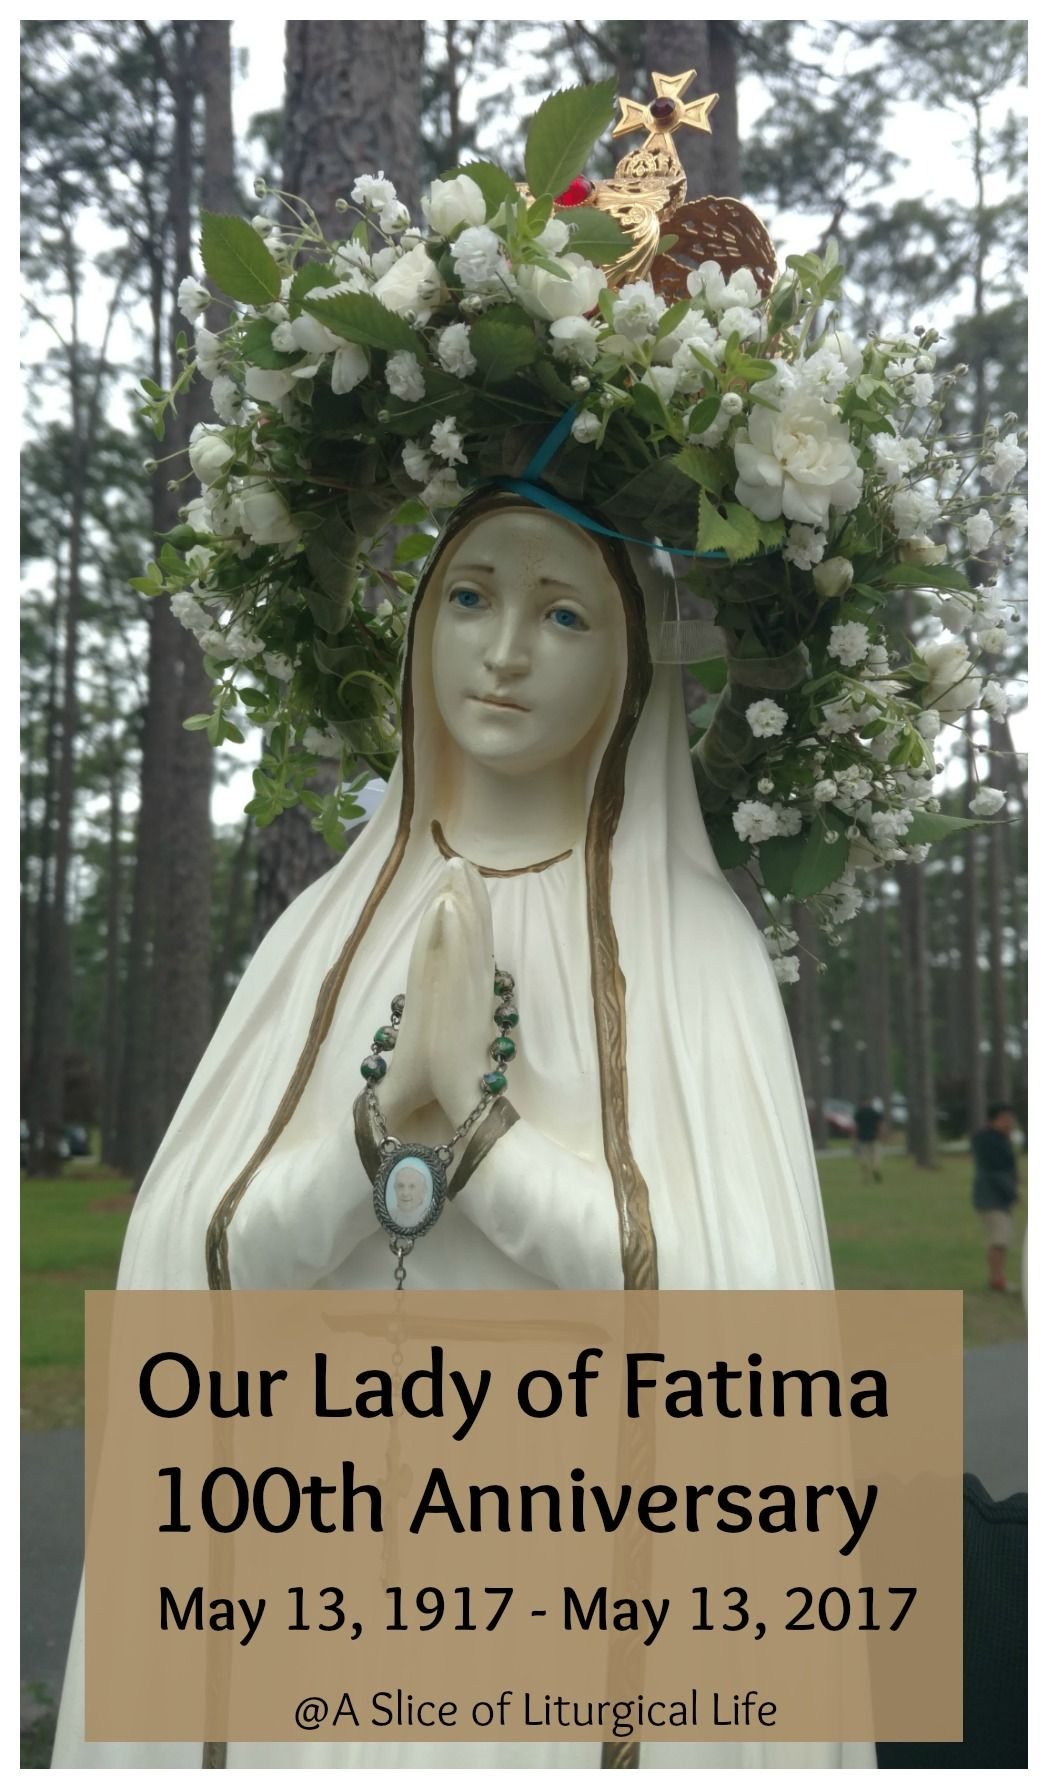 Our Lady Of Fatima 100th Anniversary And Canonization Of 2 New Saints Lady Of Fatima Fatima New Saints